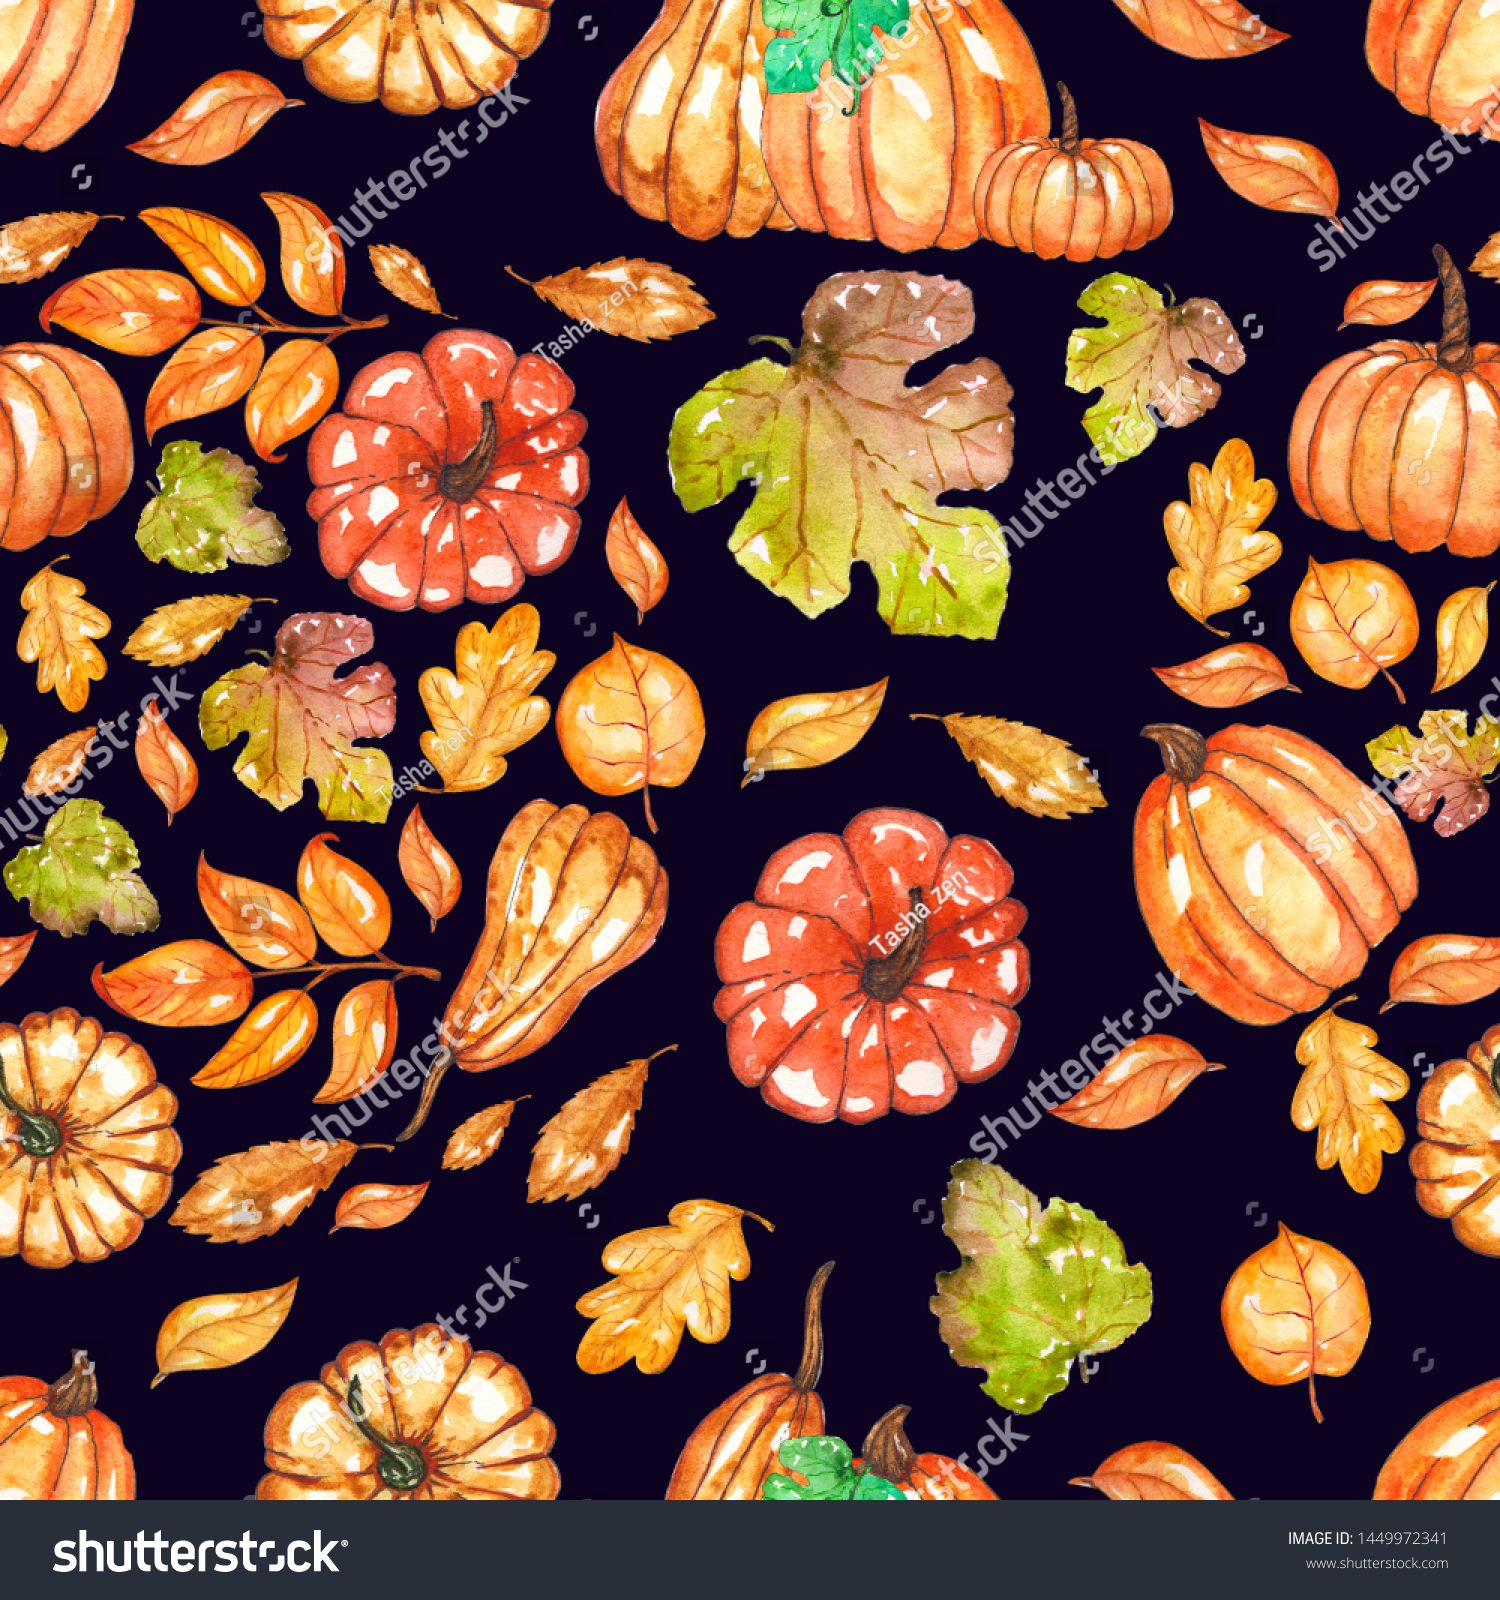 Hand Painted Watercolor Pumpkins Seamless Pattern Stock Illustration 1449972341 #halloweenbackgroundswallpapers